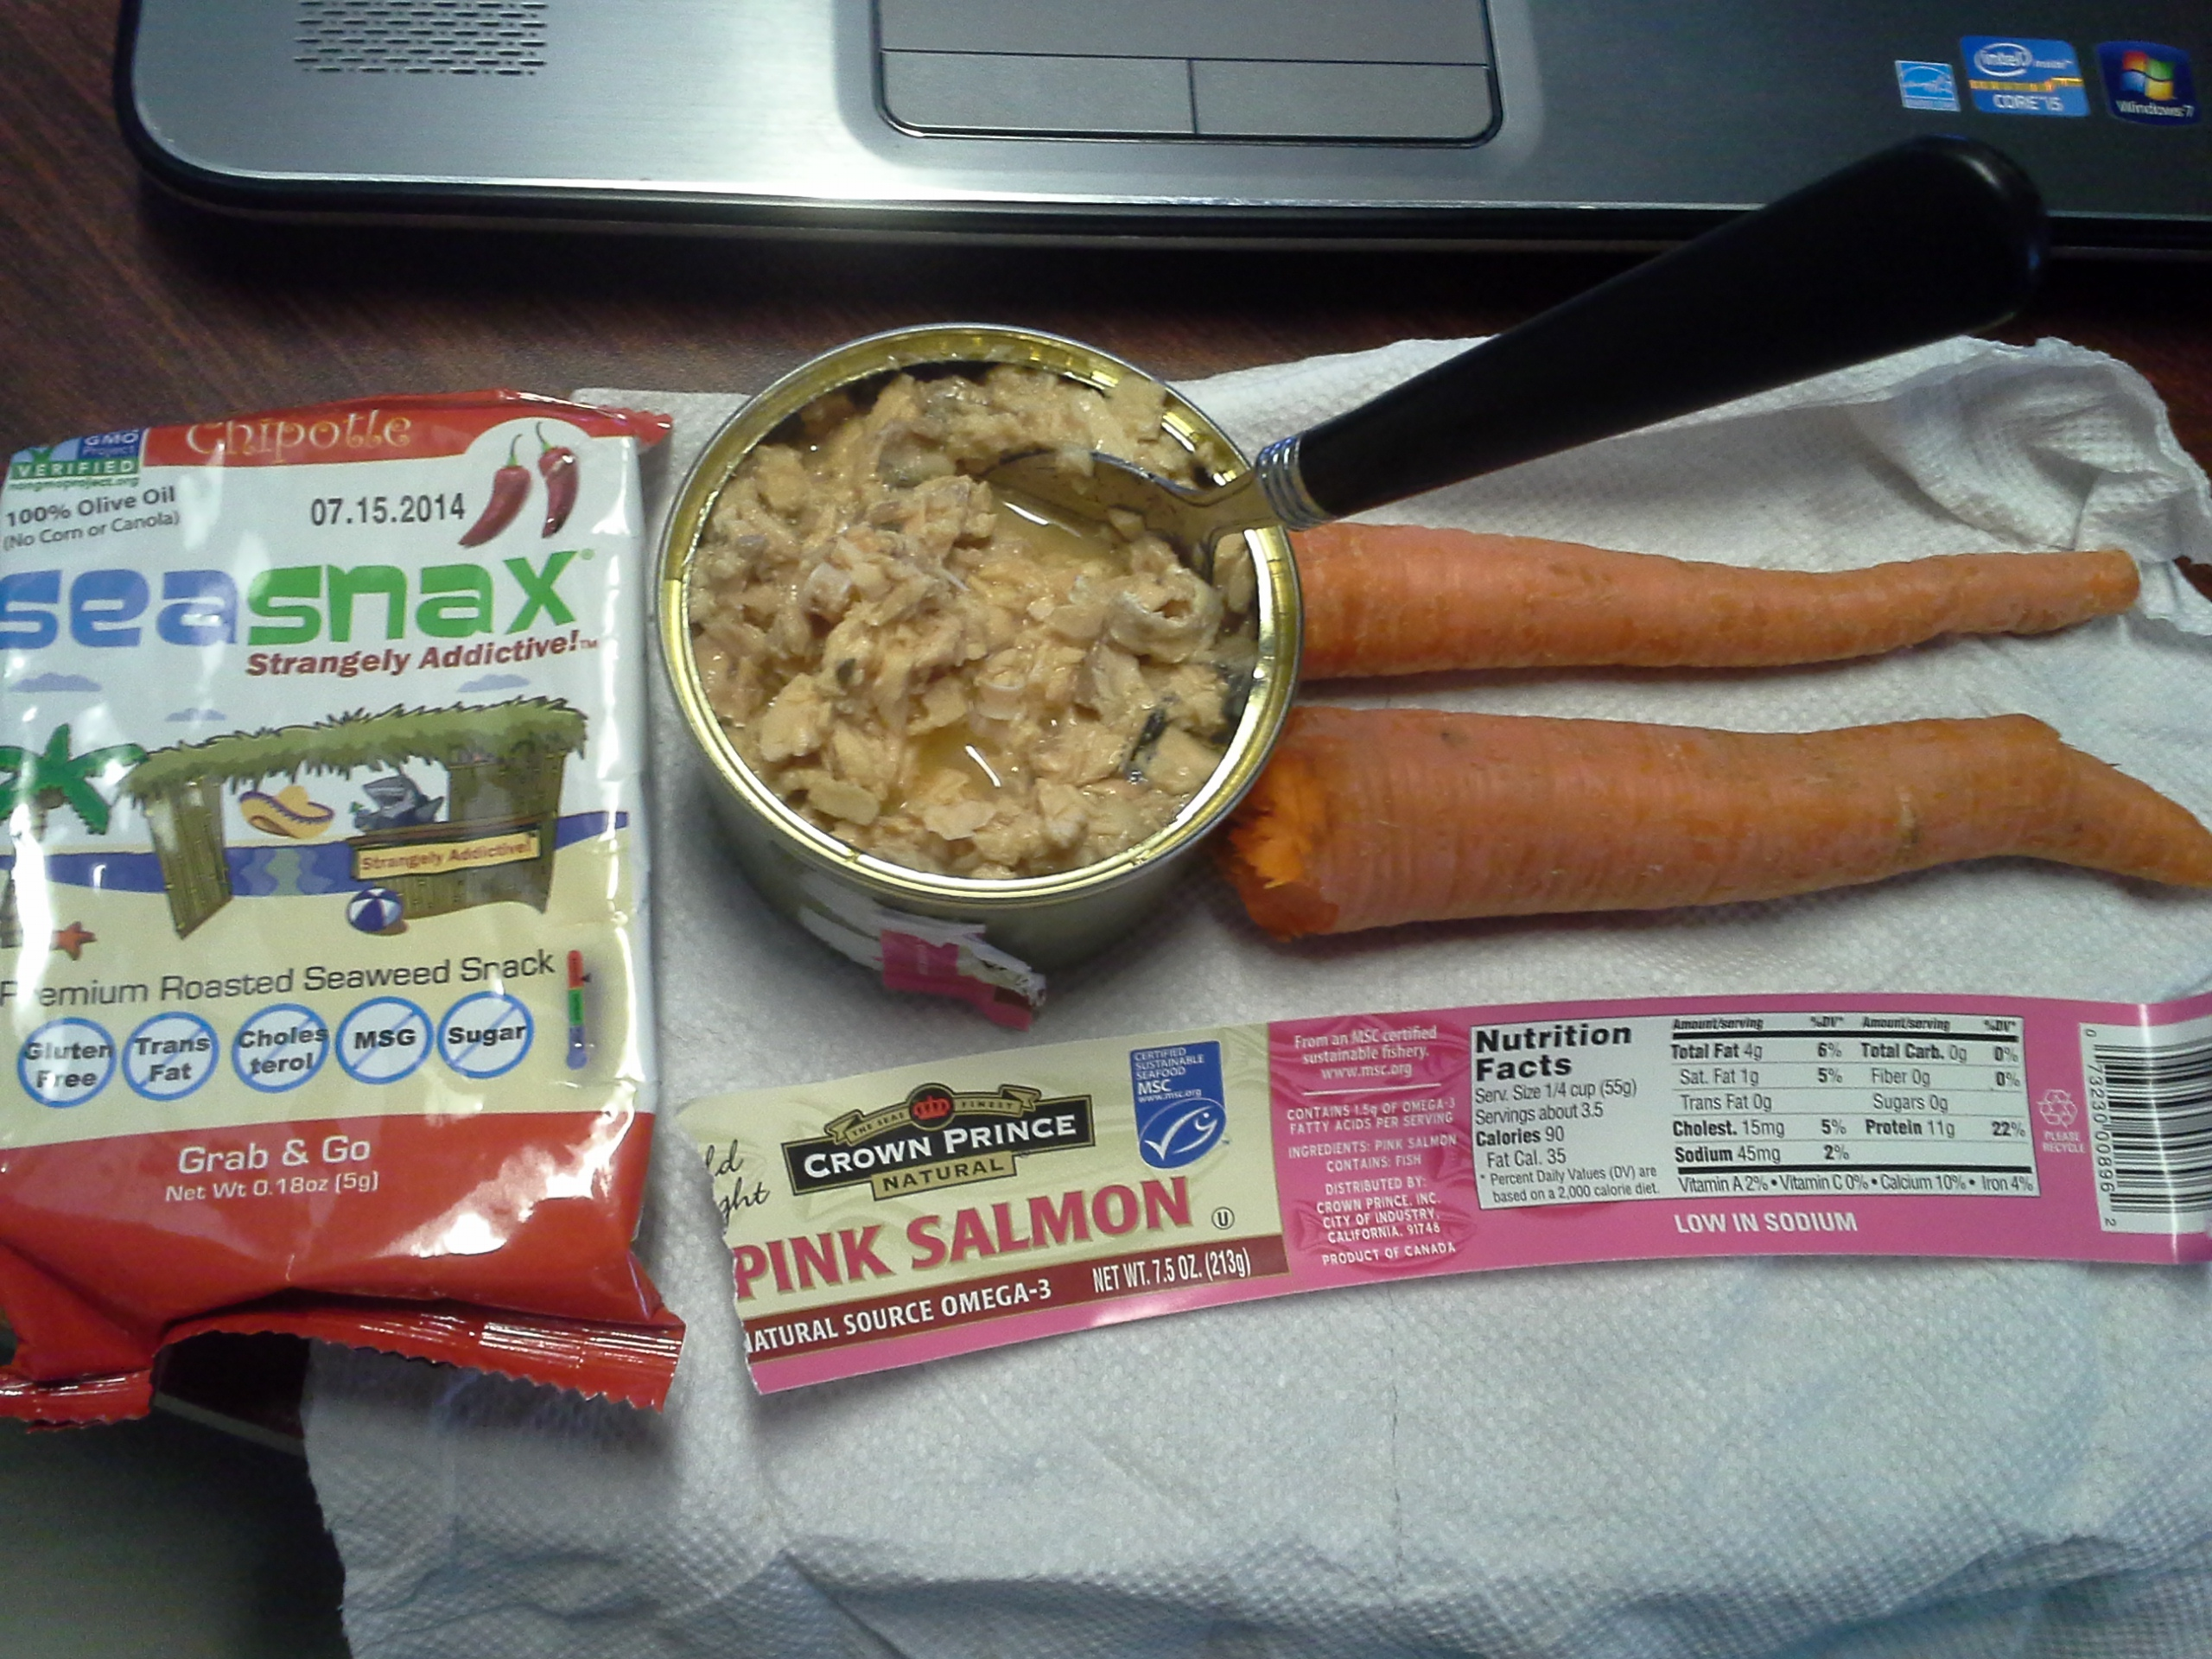 Lunch: 4:15 p.m. | 7.5 oz. salmon, 2 carrots, .18 oz. chipotle SeaSnax seaweed, 5,000 IU Vitamin D capsule, Calcium/Magnesium/Zinc caplet